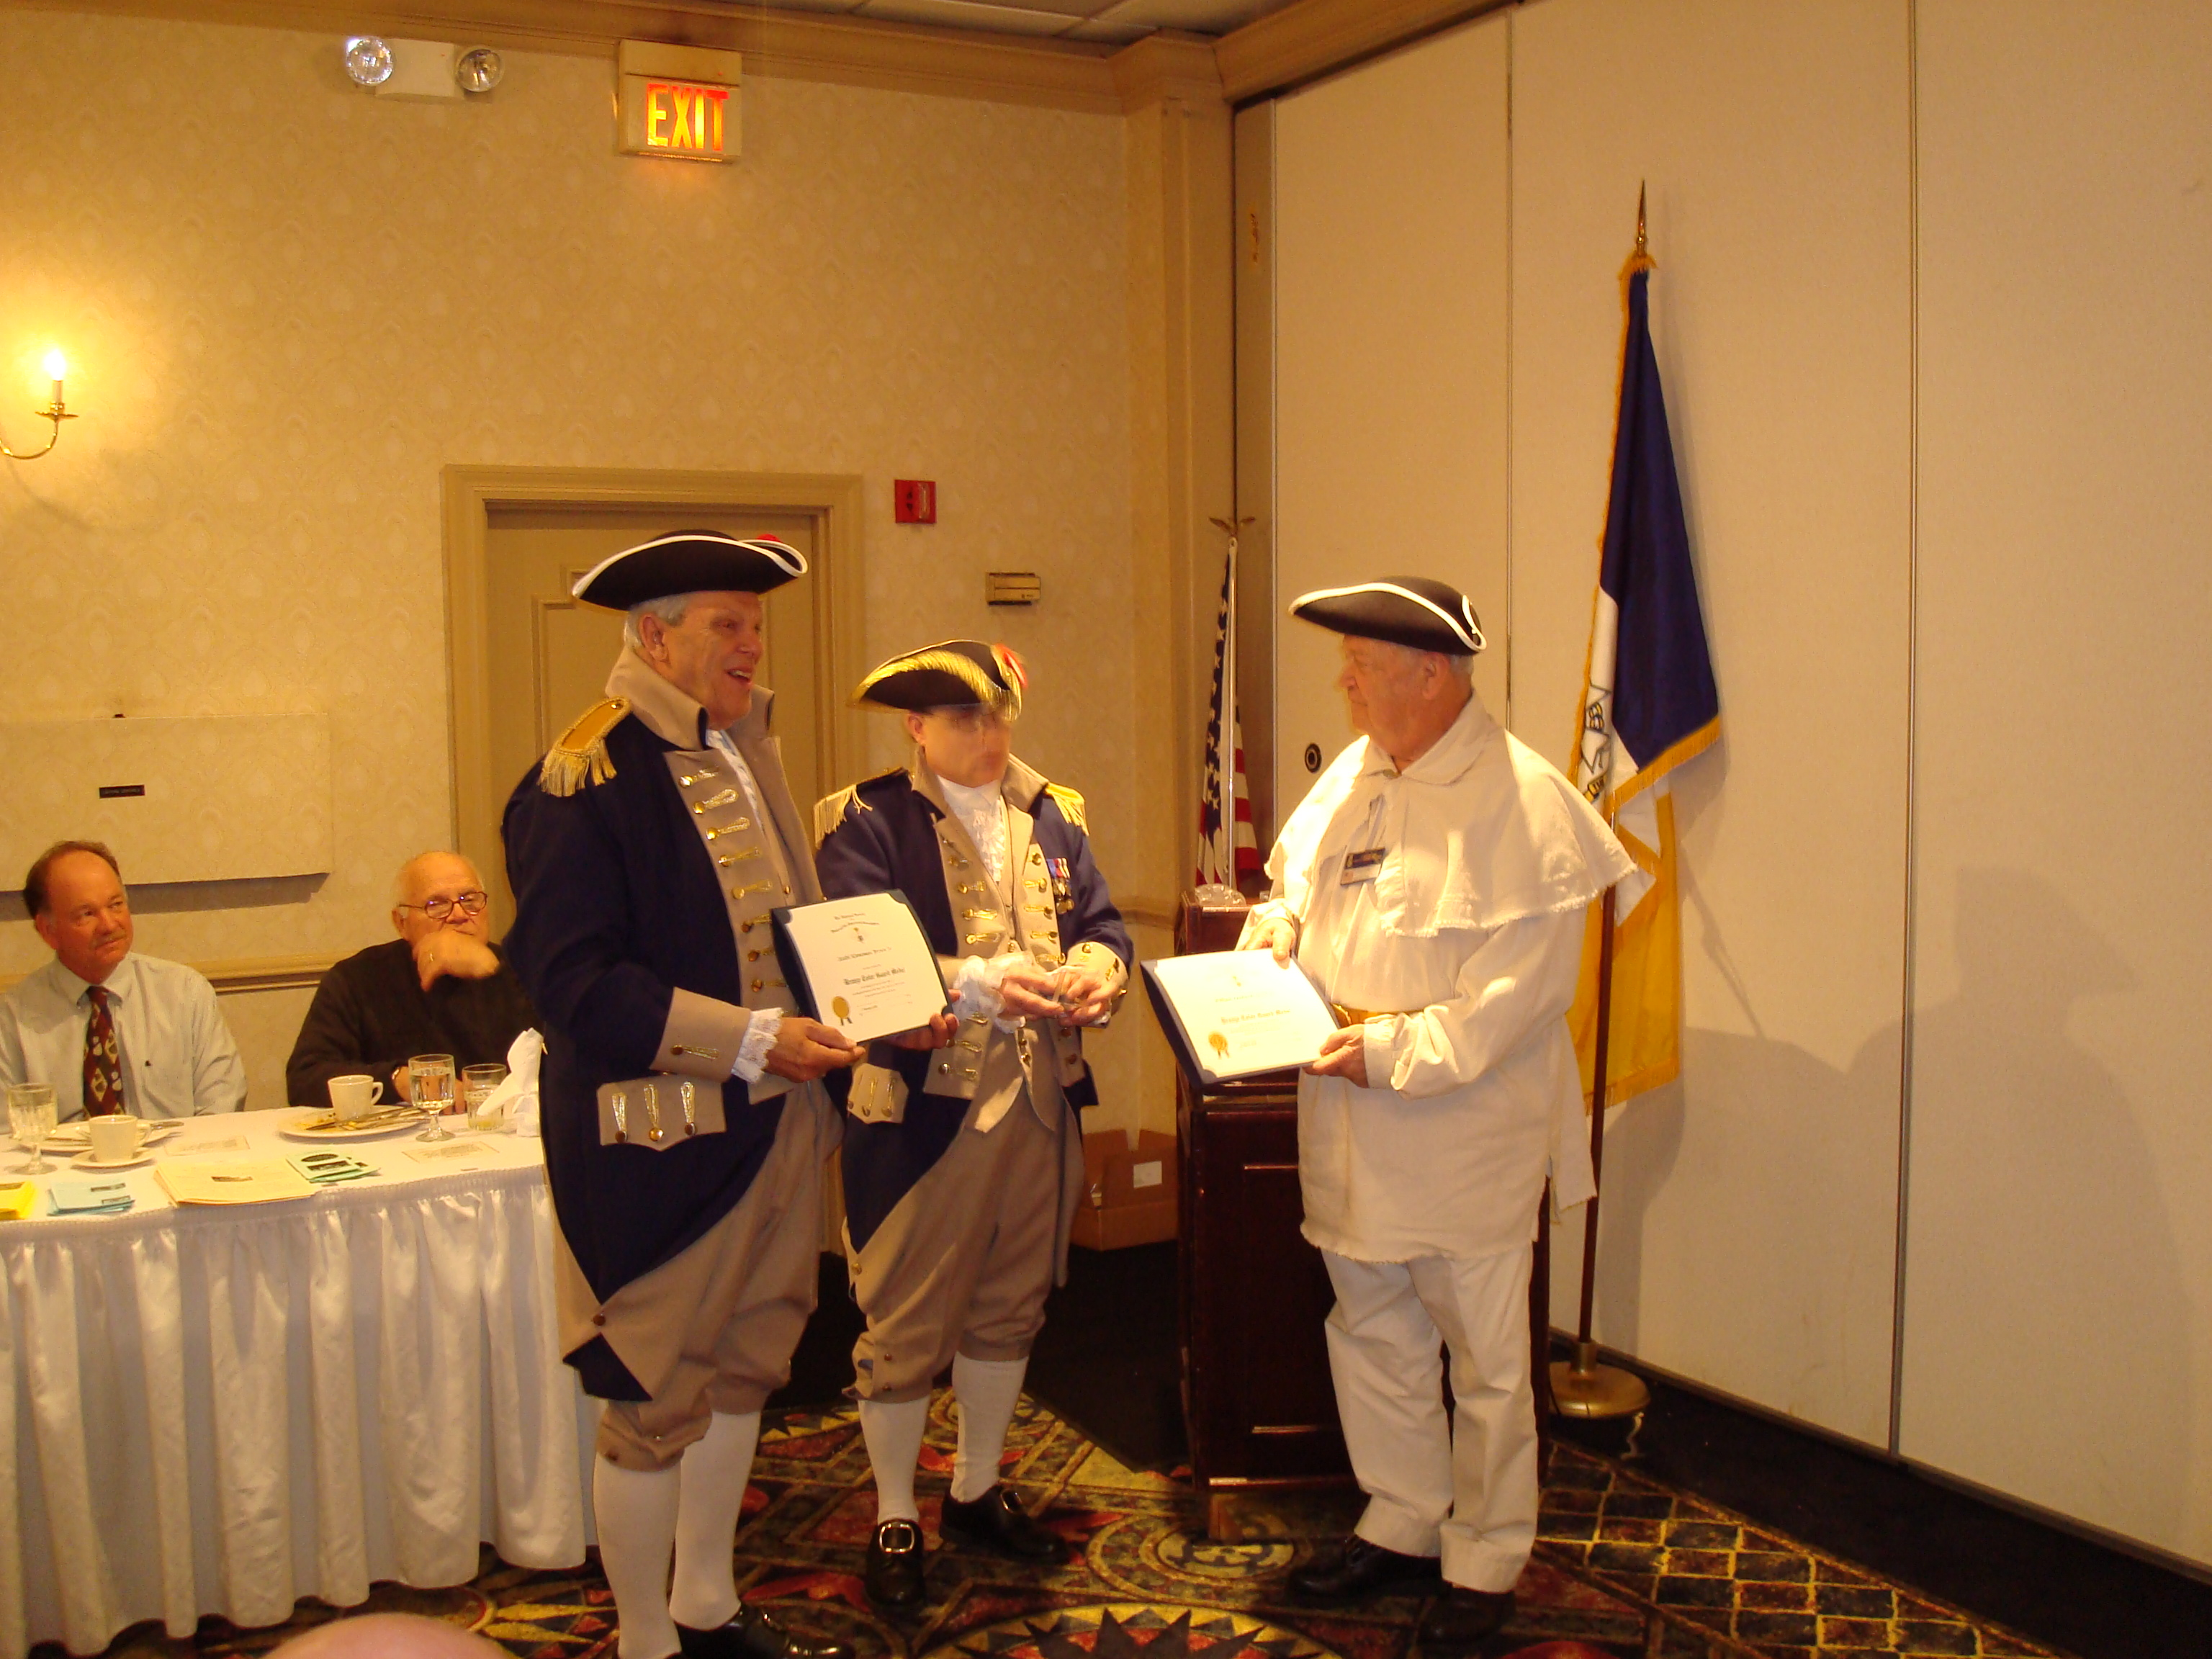 Brigadier General Stephen Baldwin, Eastern Commander, Missouri Continental Militia is shown here awarding the Bronze Color Guard Medal Award to Comparriots Keith Brown and William Groth at the Spirit of St. Louis Chapter meeting on 15 March 2008.